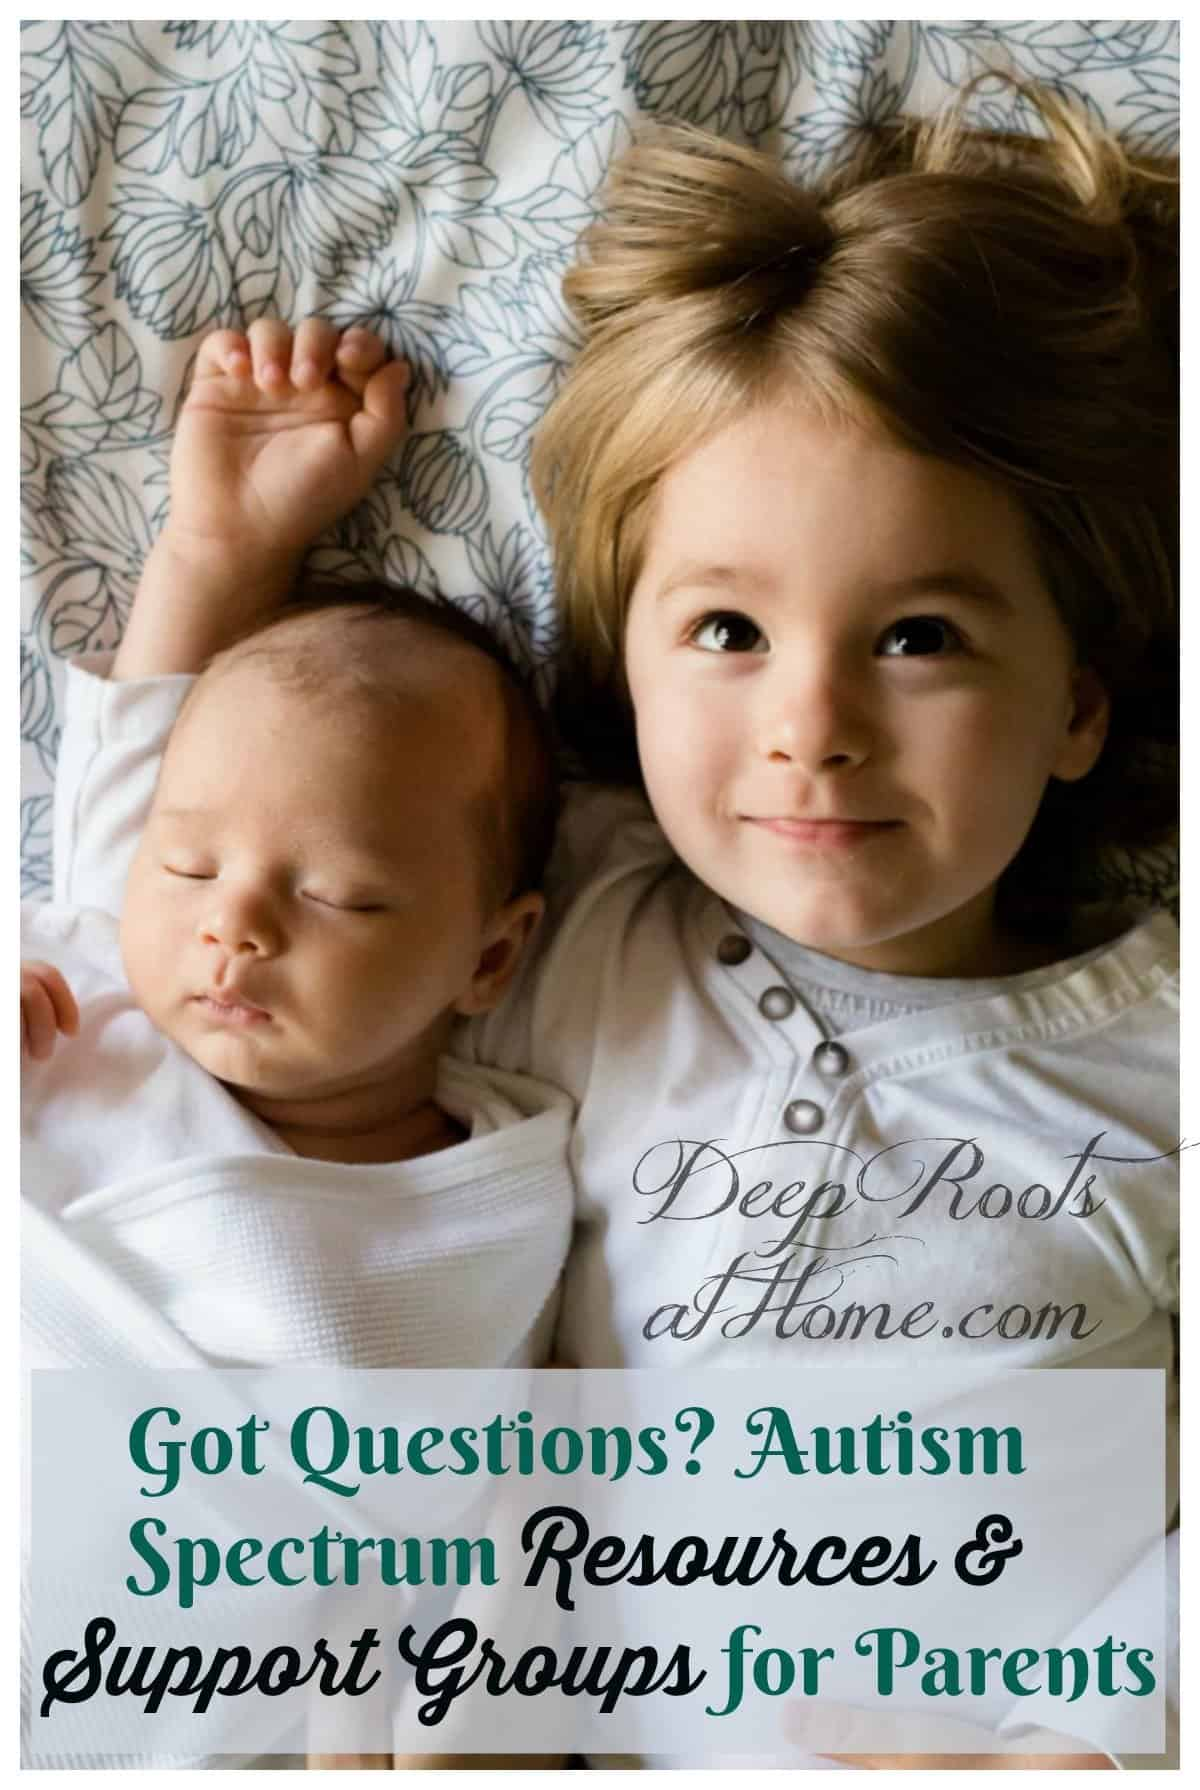 Got Questions? Autism Spectrum Resources & Support Groups for Parents. A happy toddler snuggling with her little baby brother